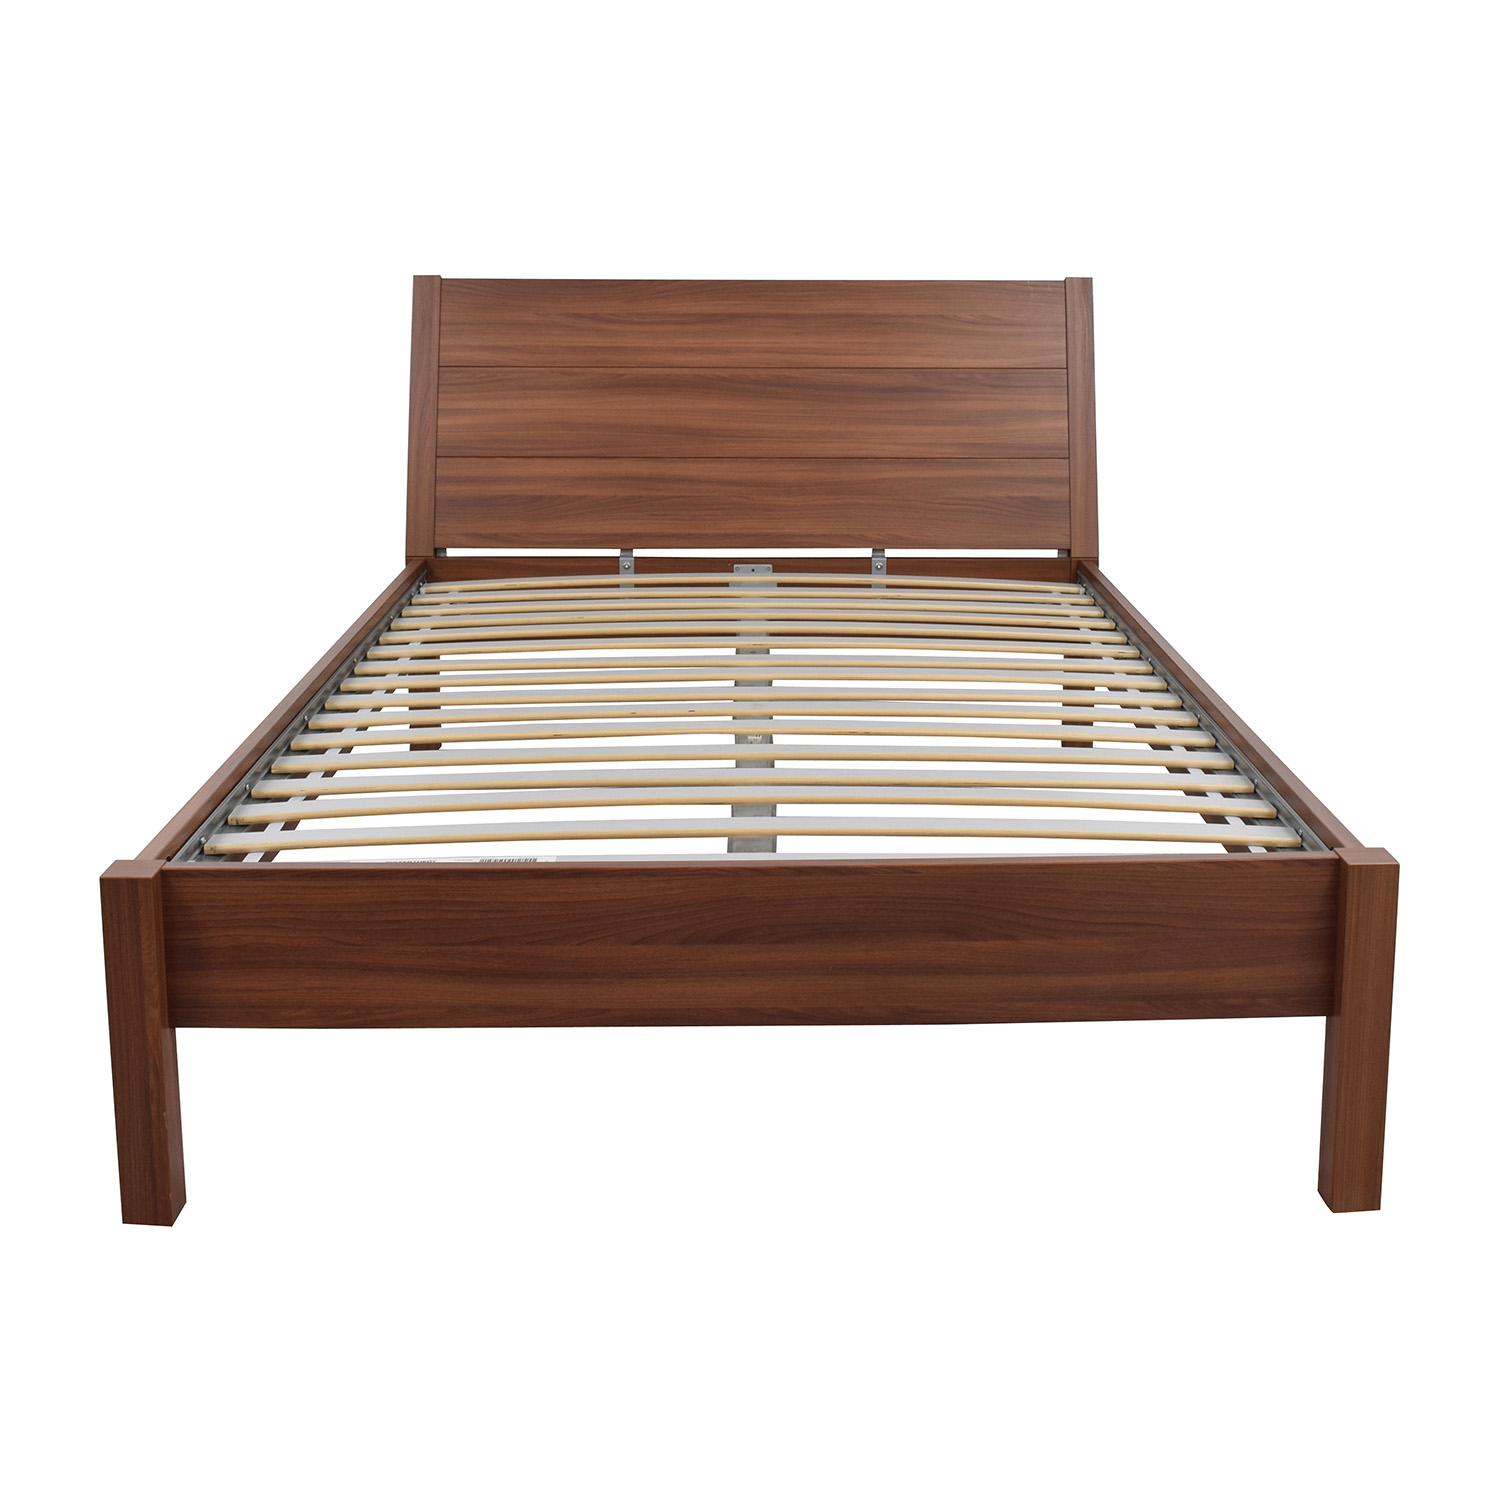 84% OFF - IKEA IKEA Queen Wooden Platform Bed Frame / Beds